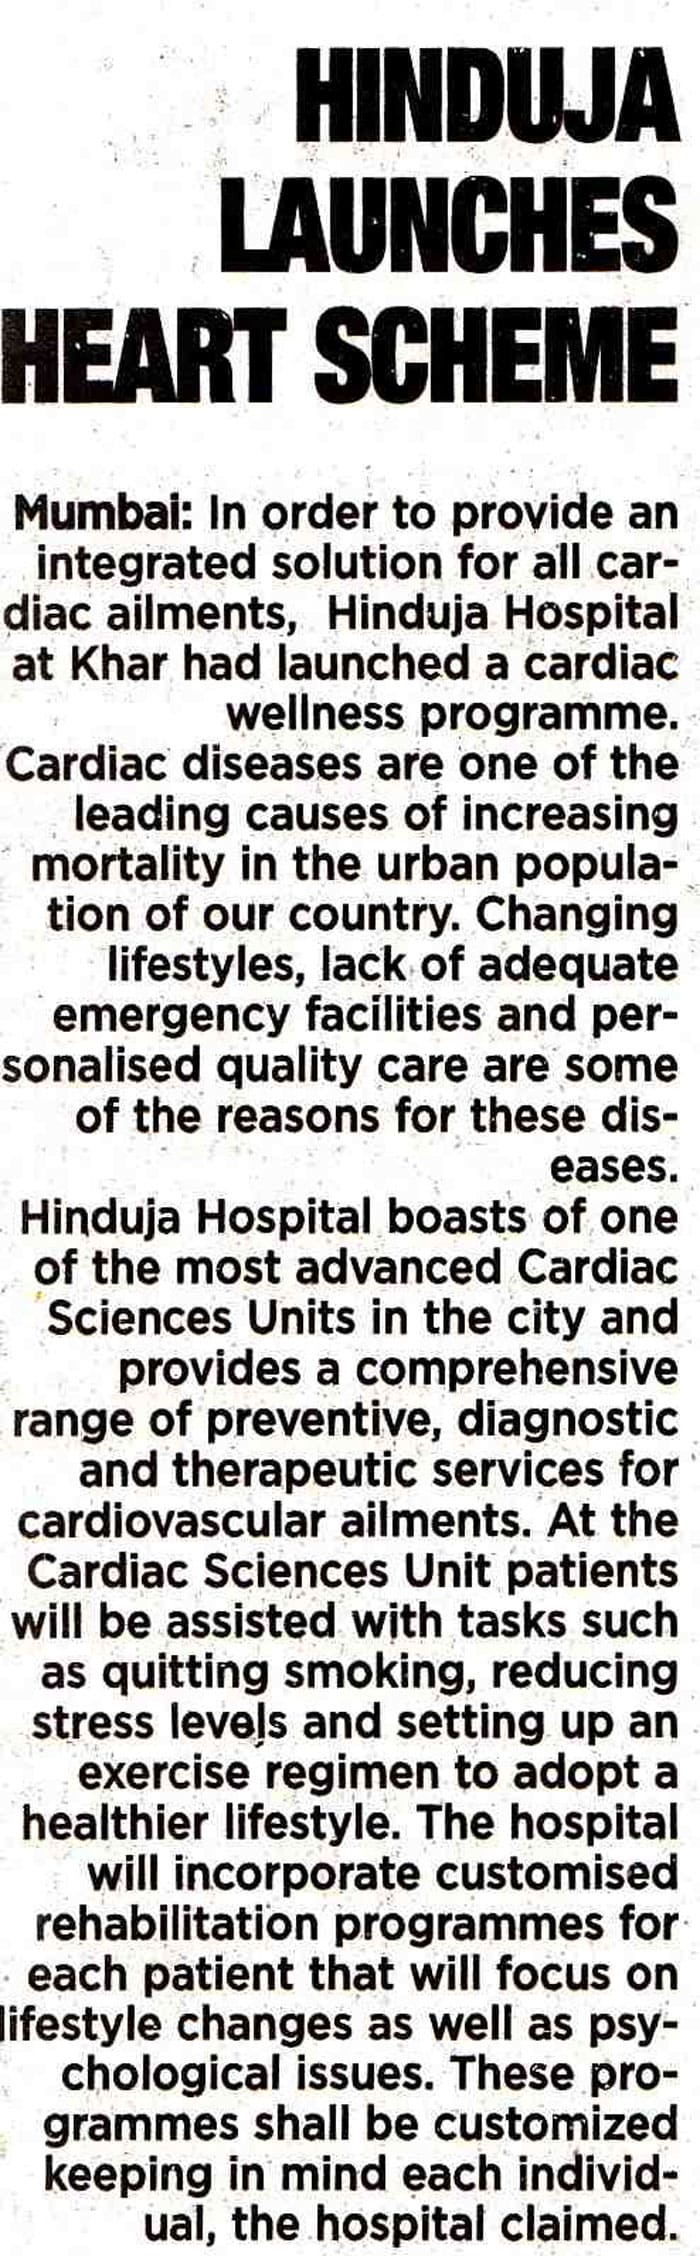 Hinduja HealthCare -  Article 4